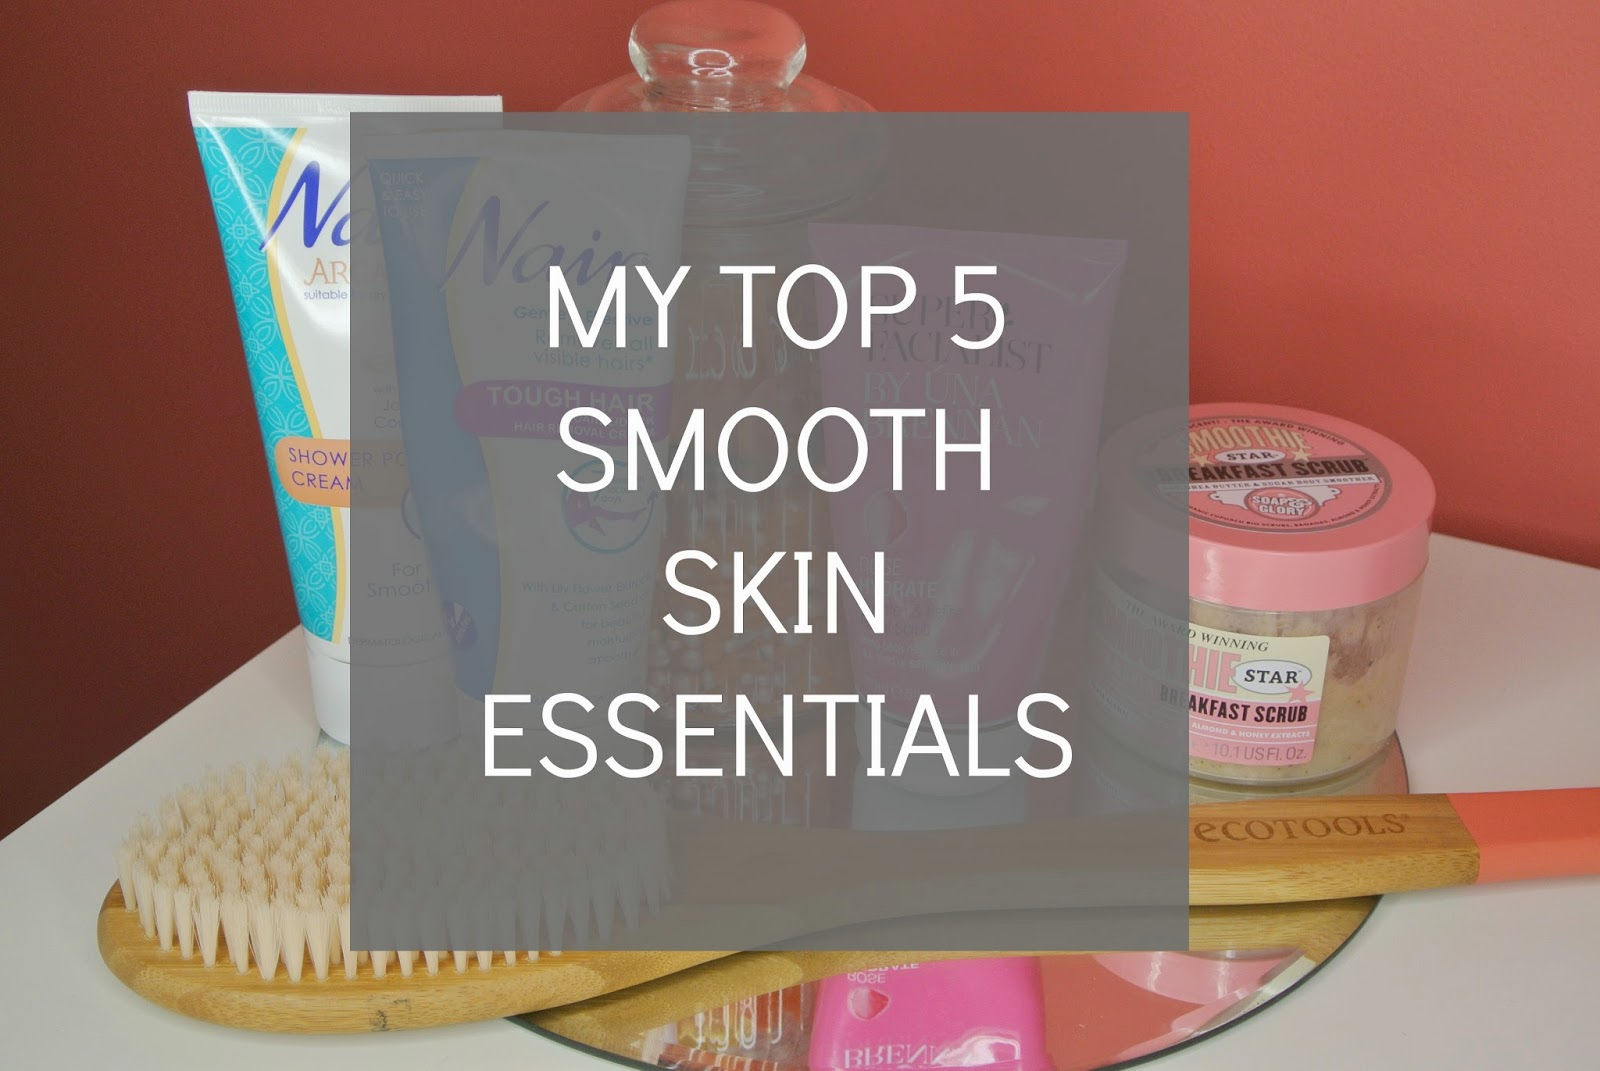 Products for smooth skin